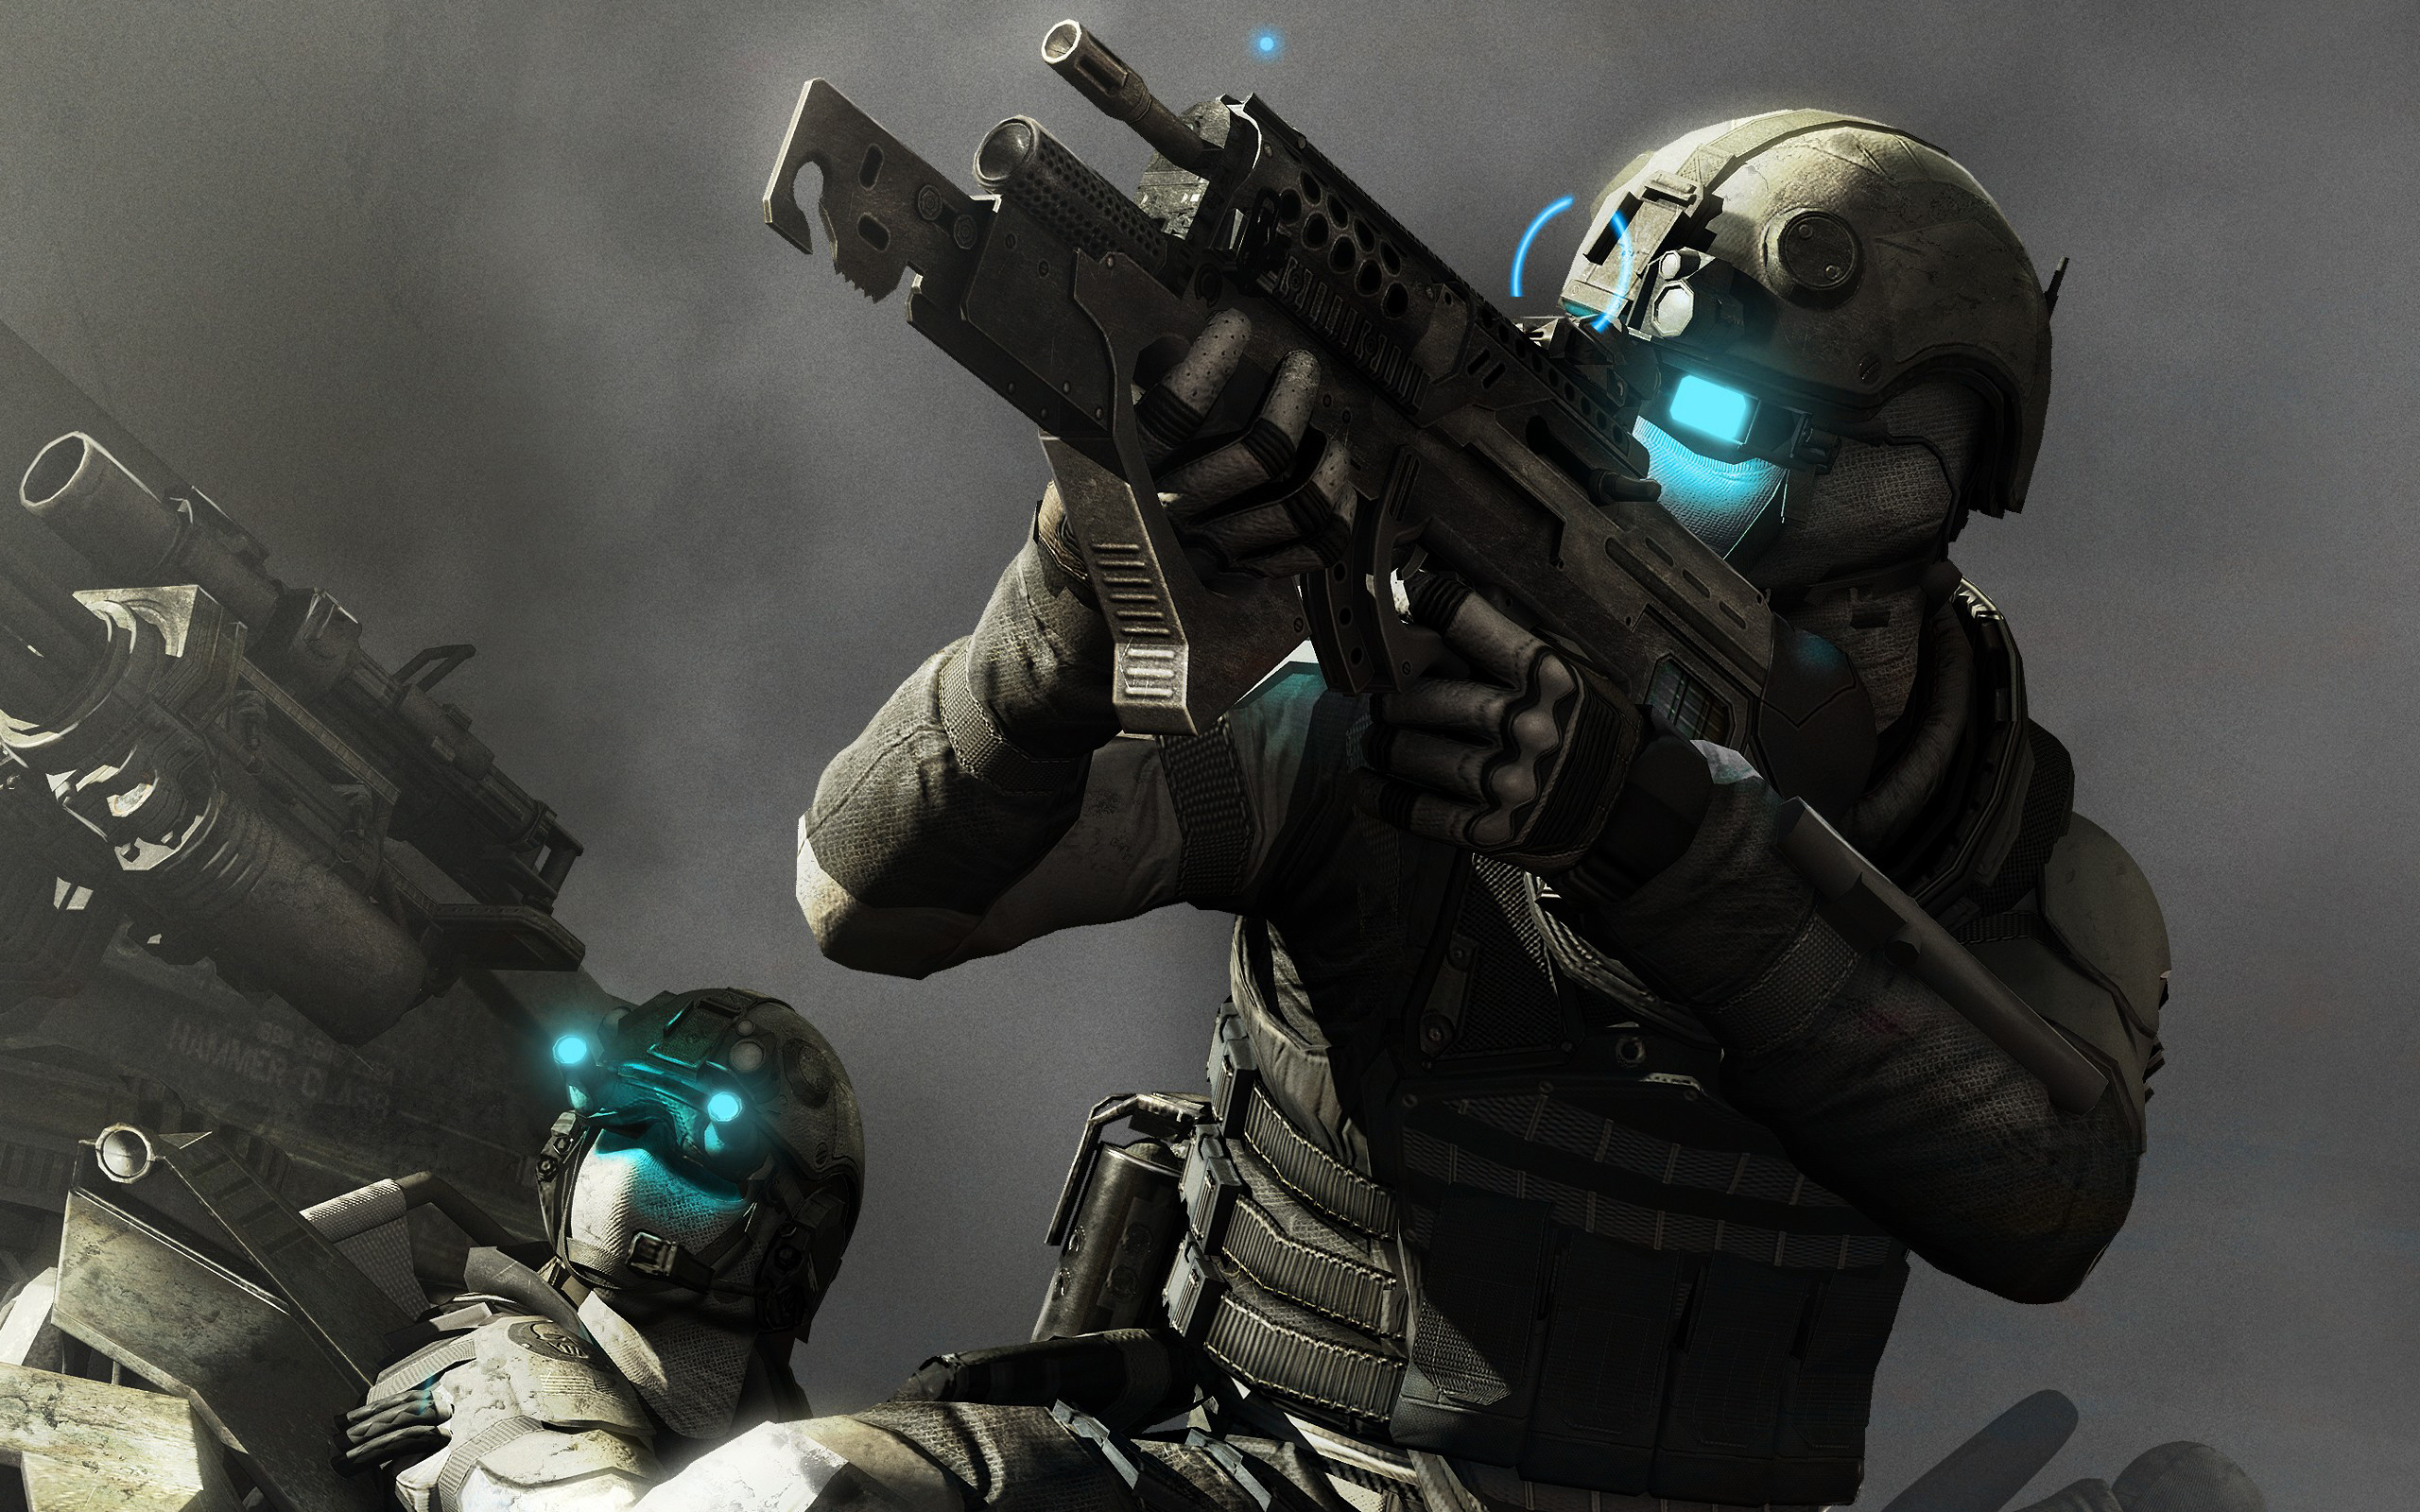 tom clancys ghost recon future soldier wallpaper 3 | wallpapersbq